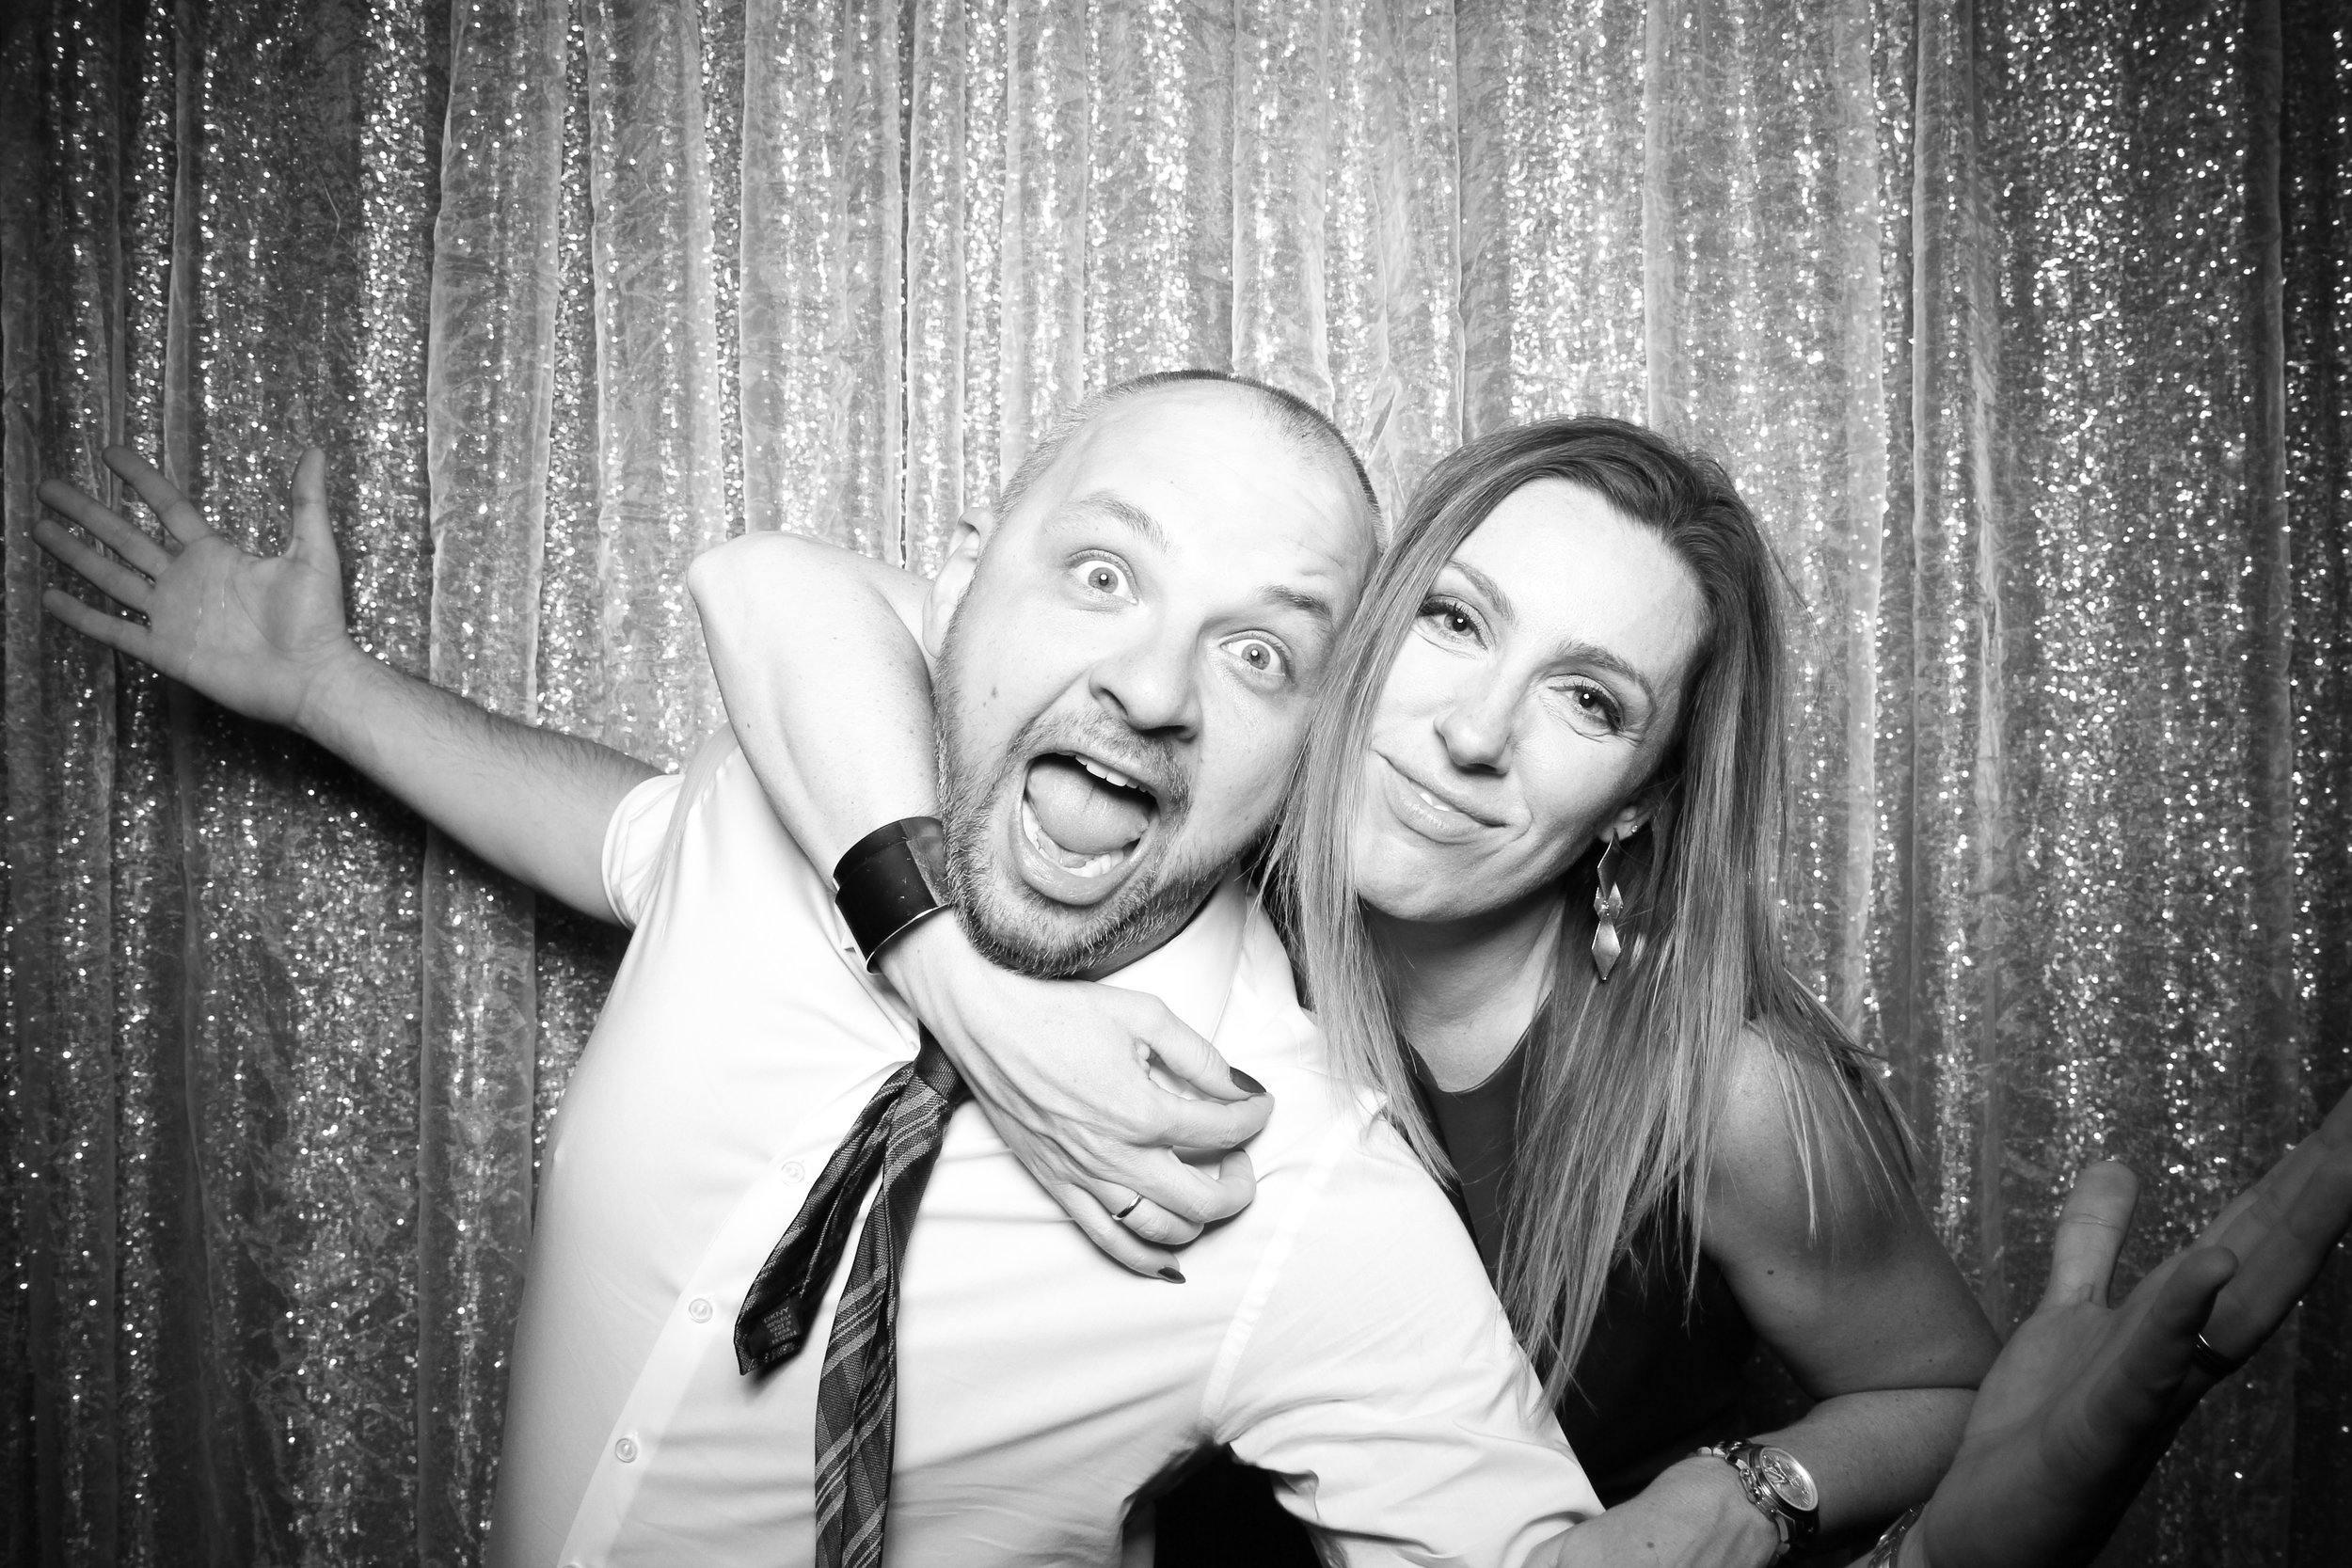 Chicago_Vintage_Photobooth_Montgomery_Club_Holiday_Party_21.jpg